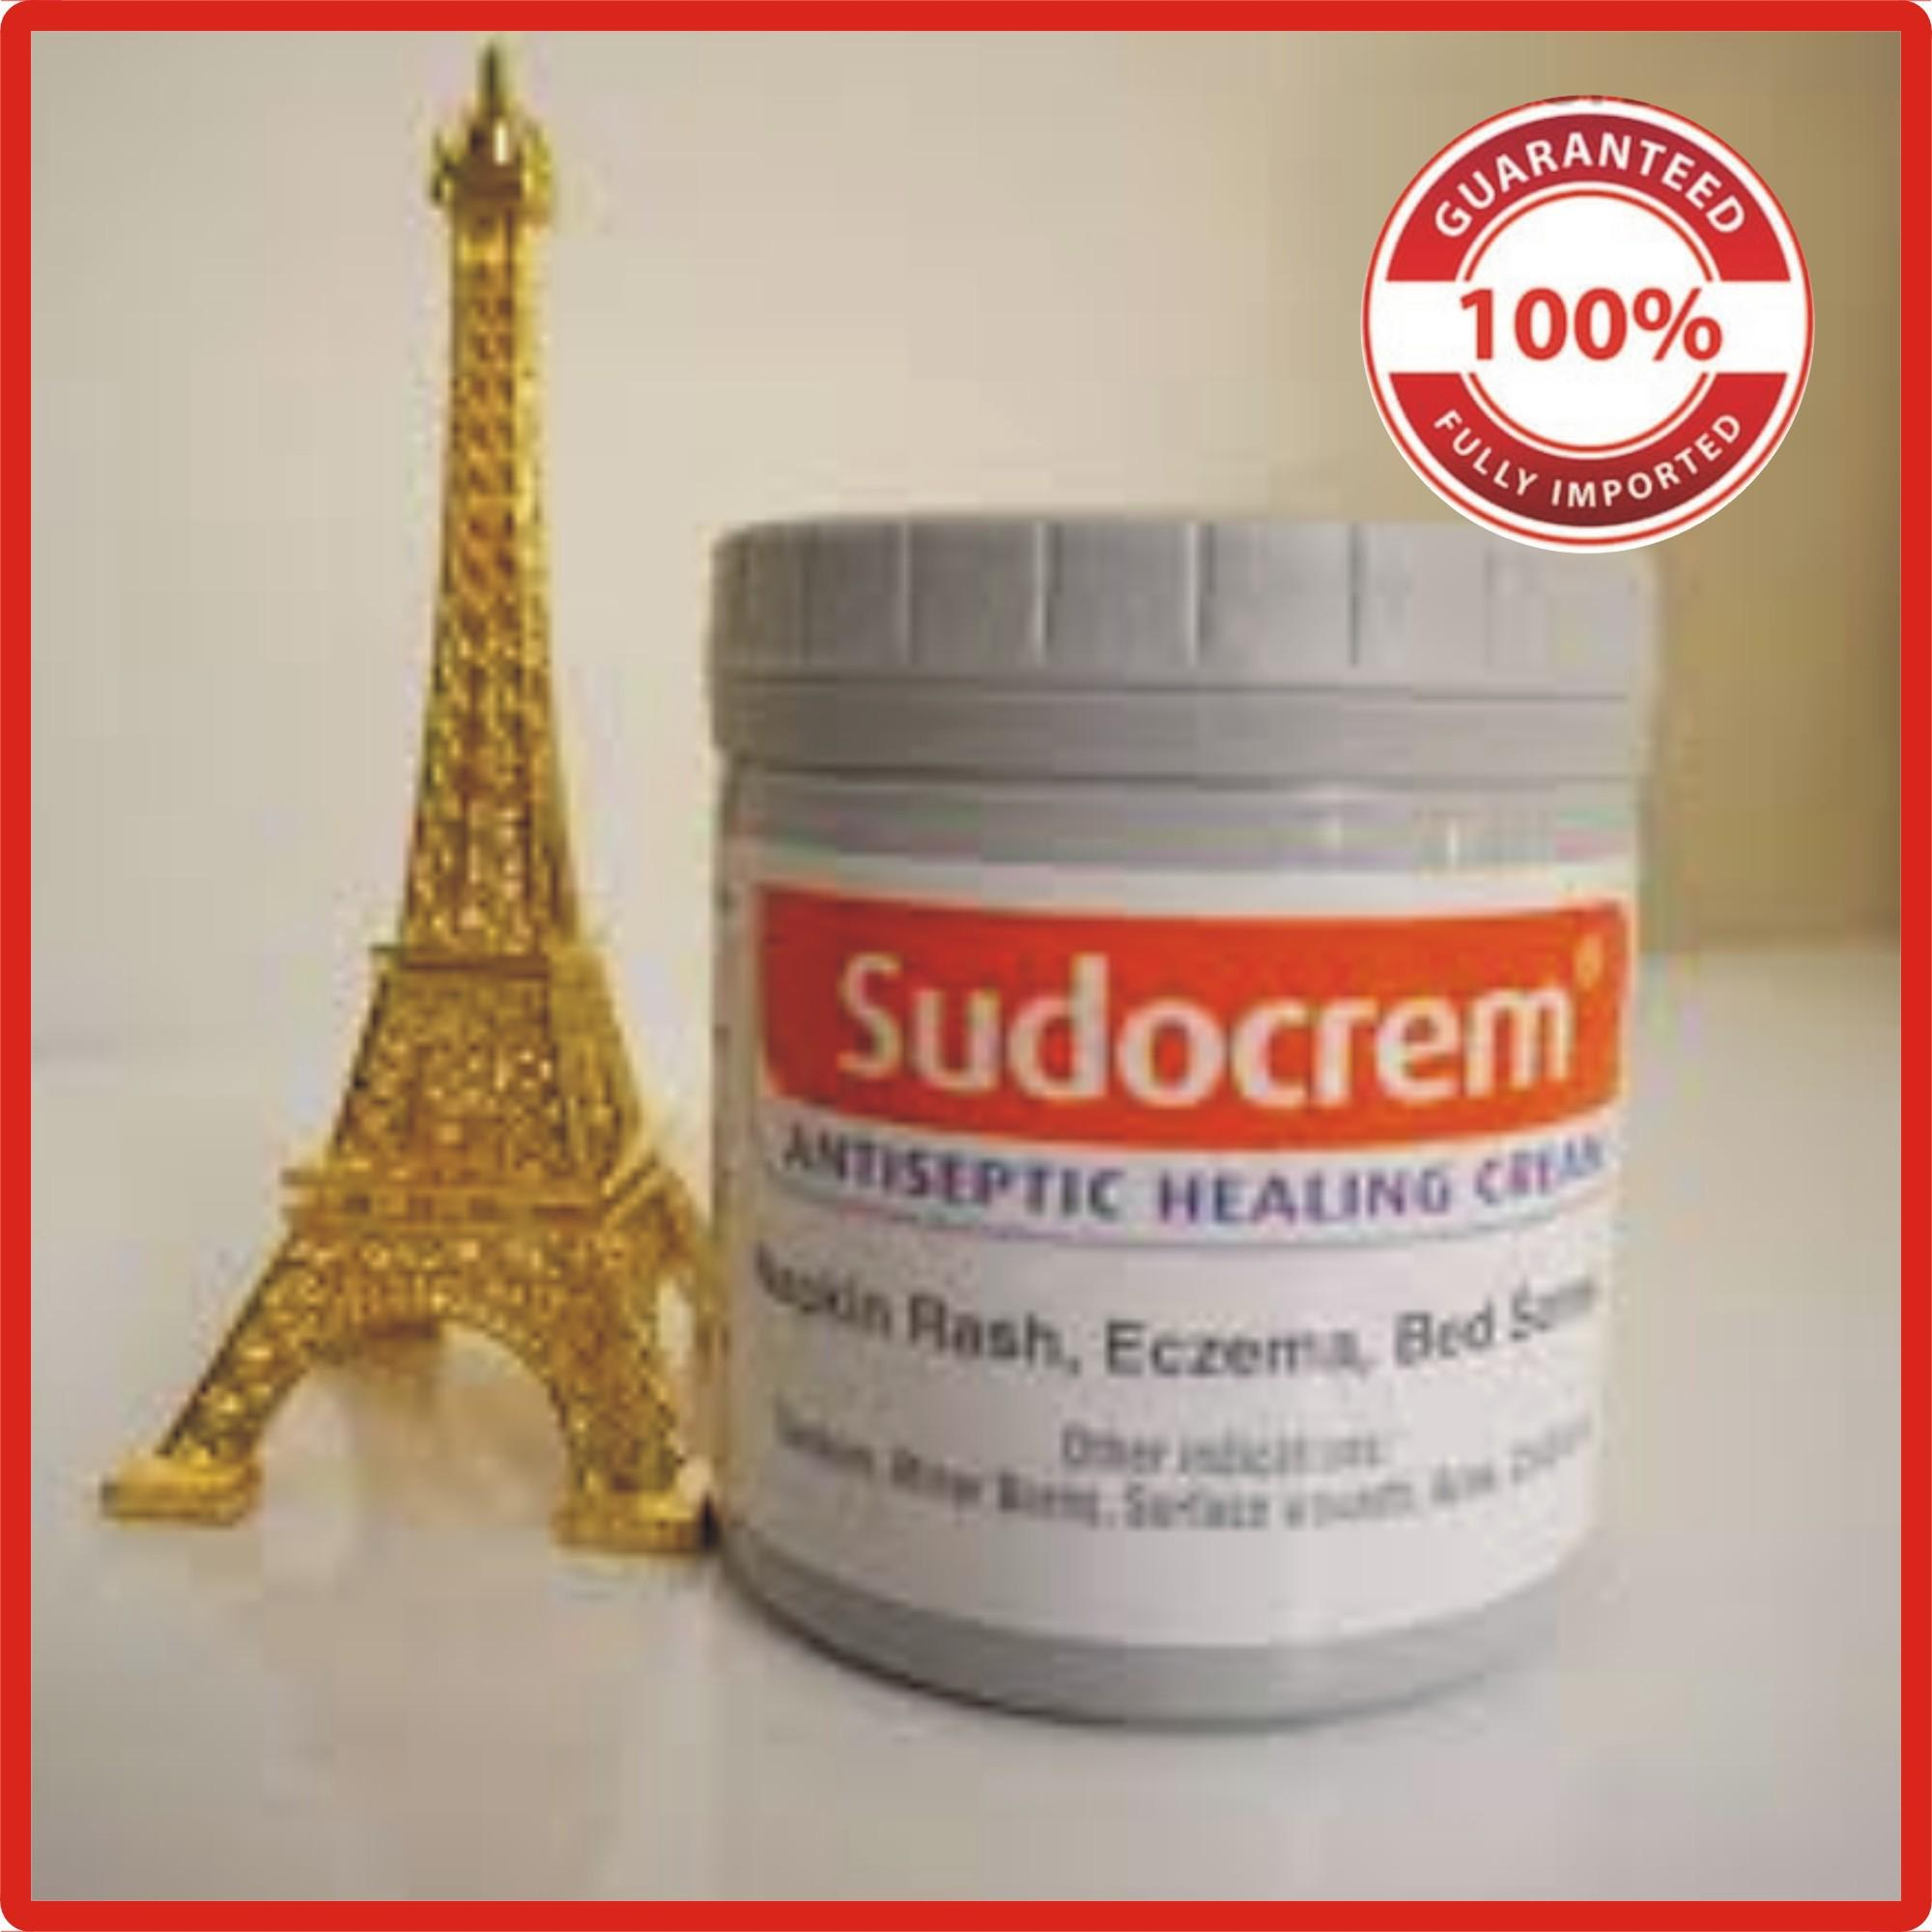 Sudocrem Antiseptic Healing Cream For Nappy Rash, Eczema, Burns, Wounds and more 125